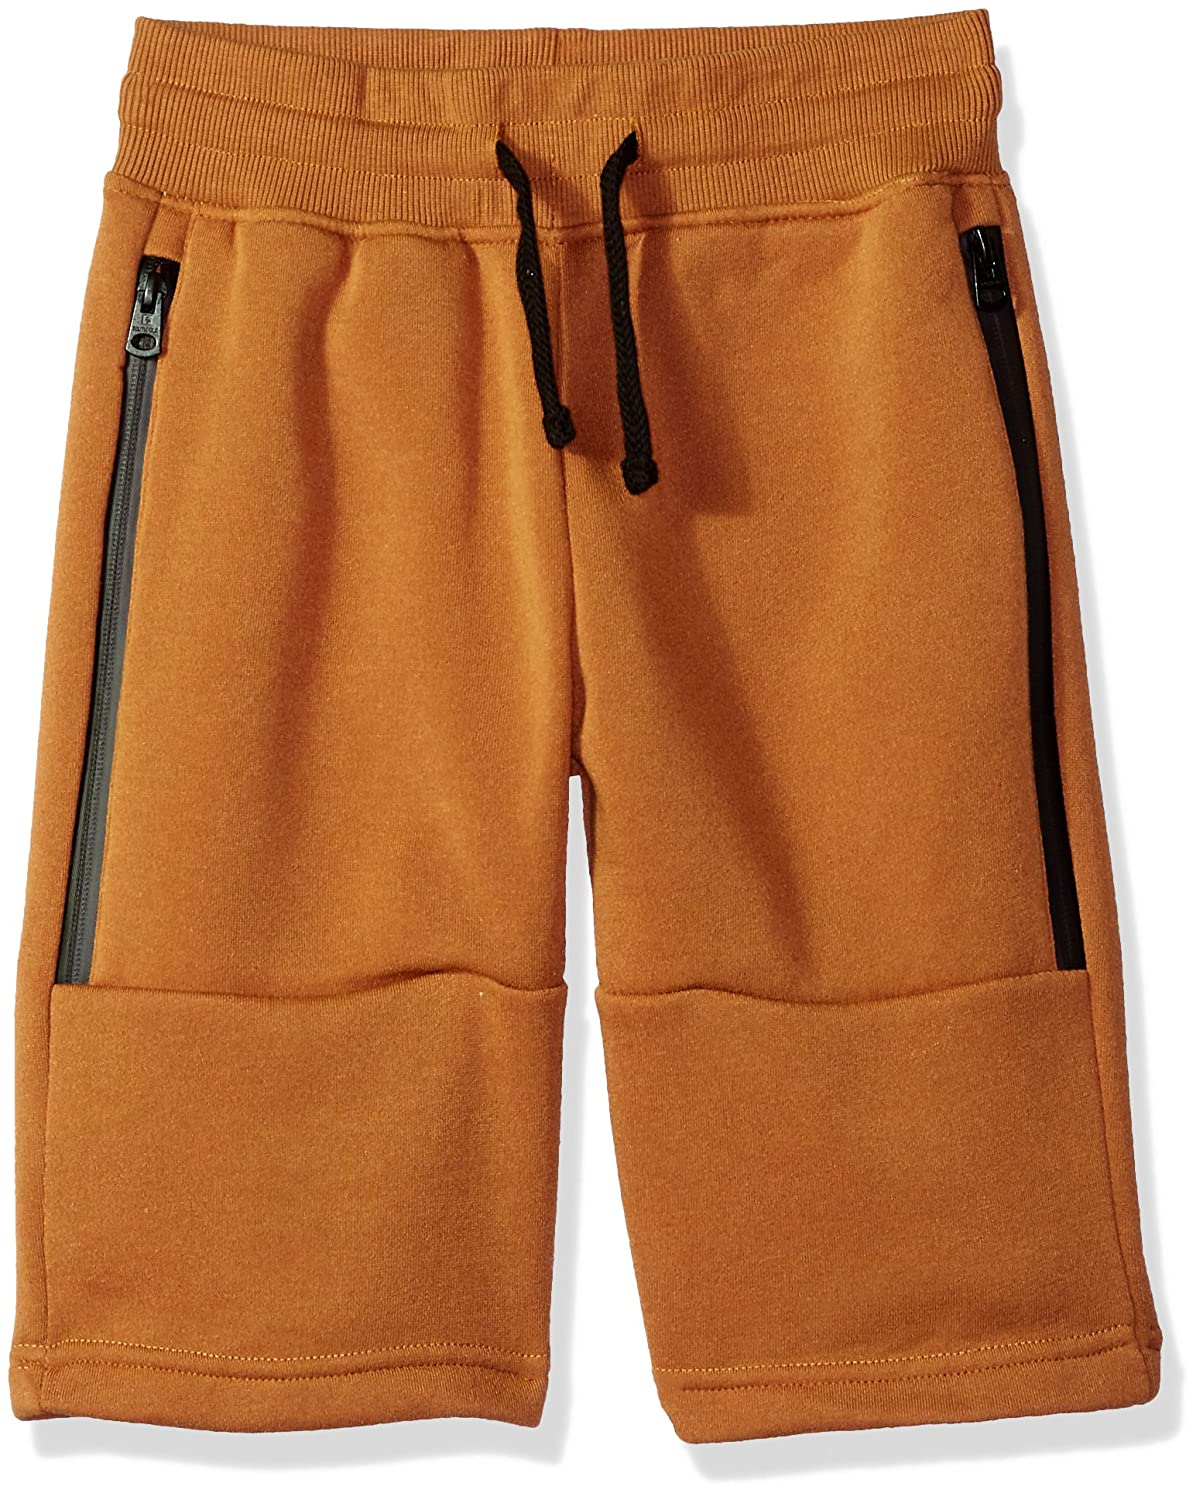 Southpole Big Boys Jogger Shorts in Basic Solid Colors and Fleece Fabric,